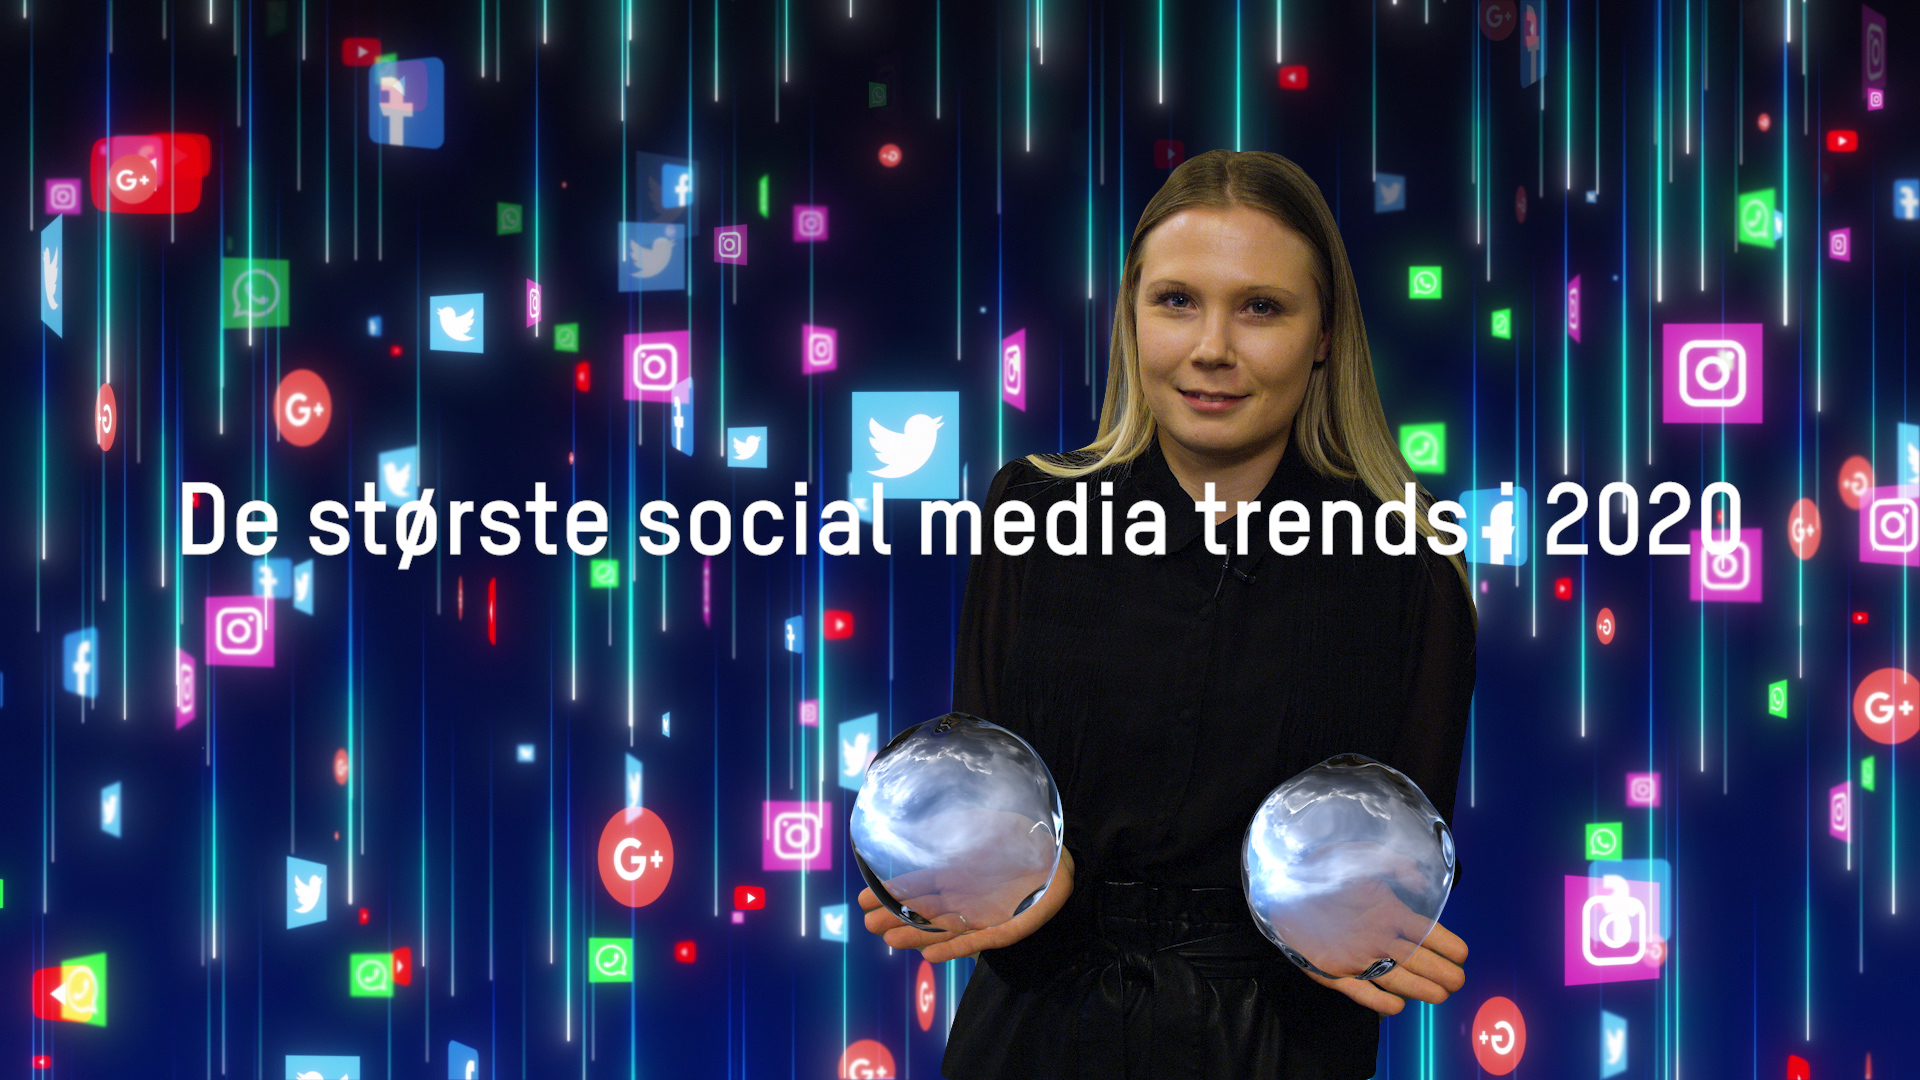 De største social media trends i 2020 - JJ Kommunikation